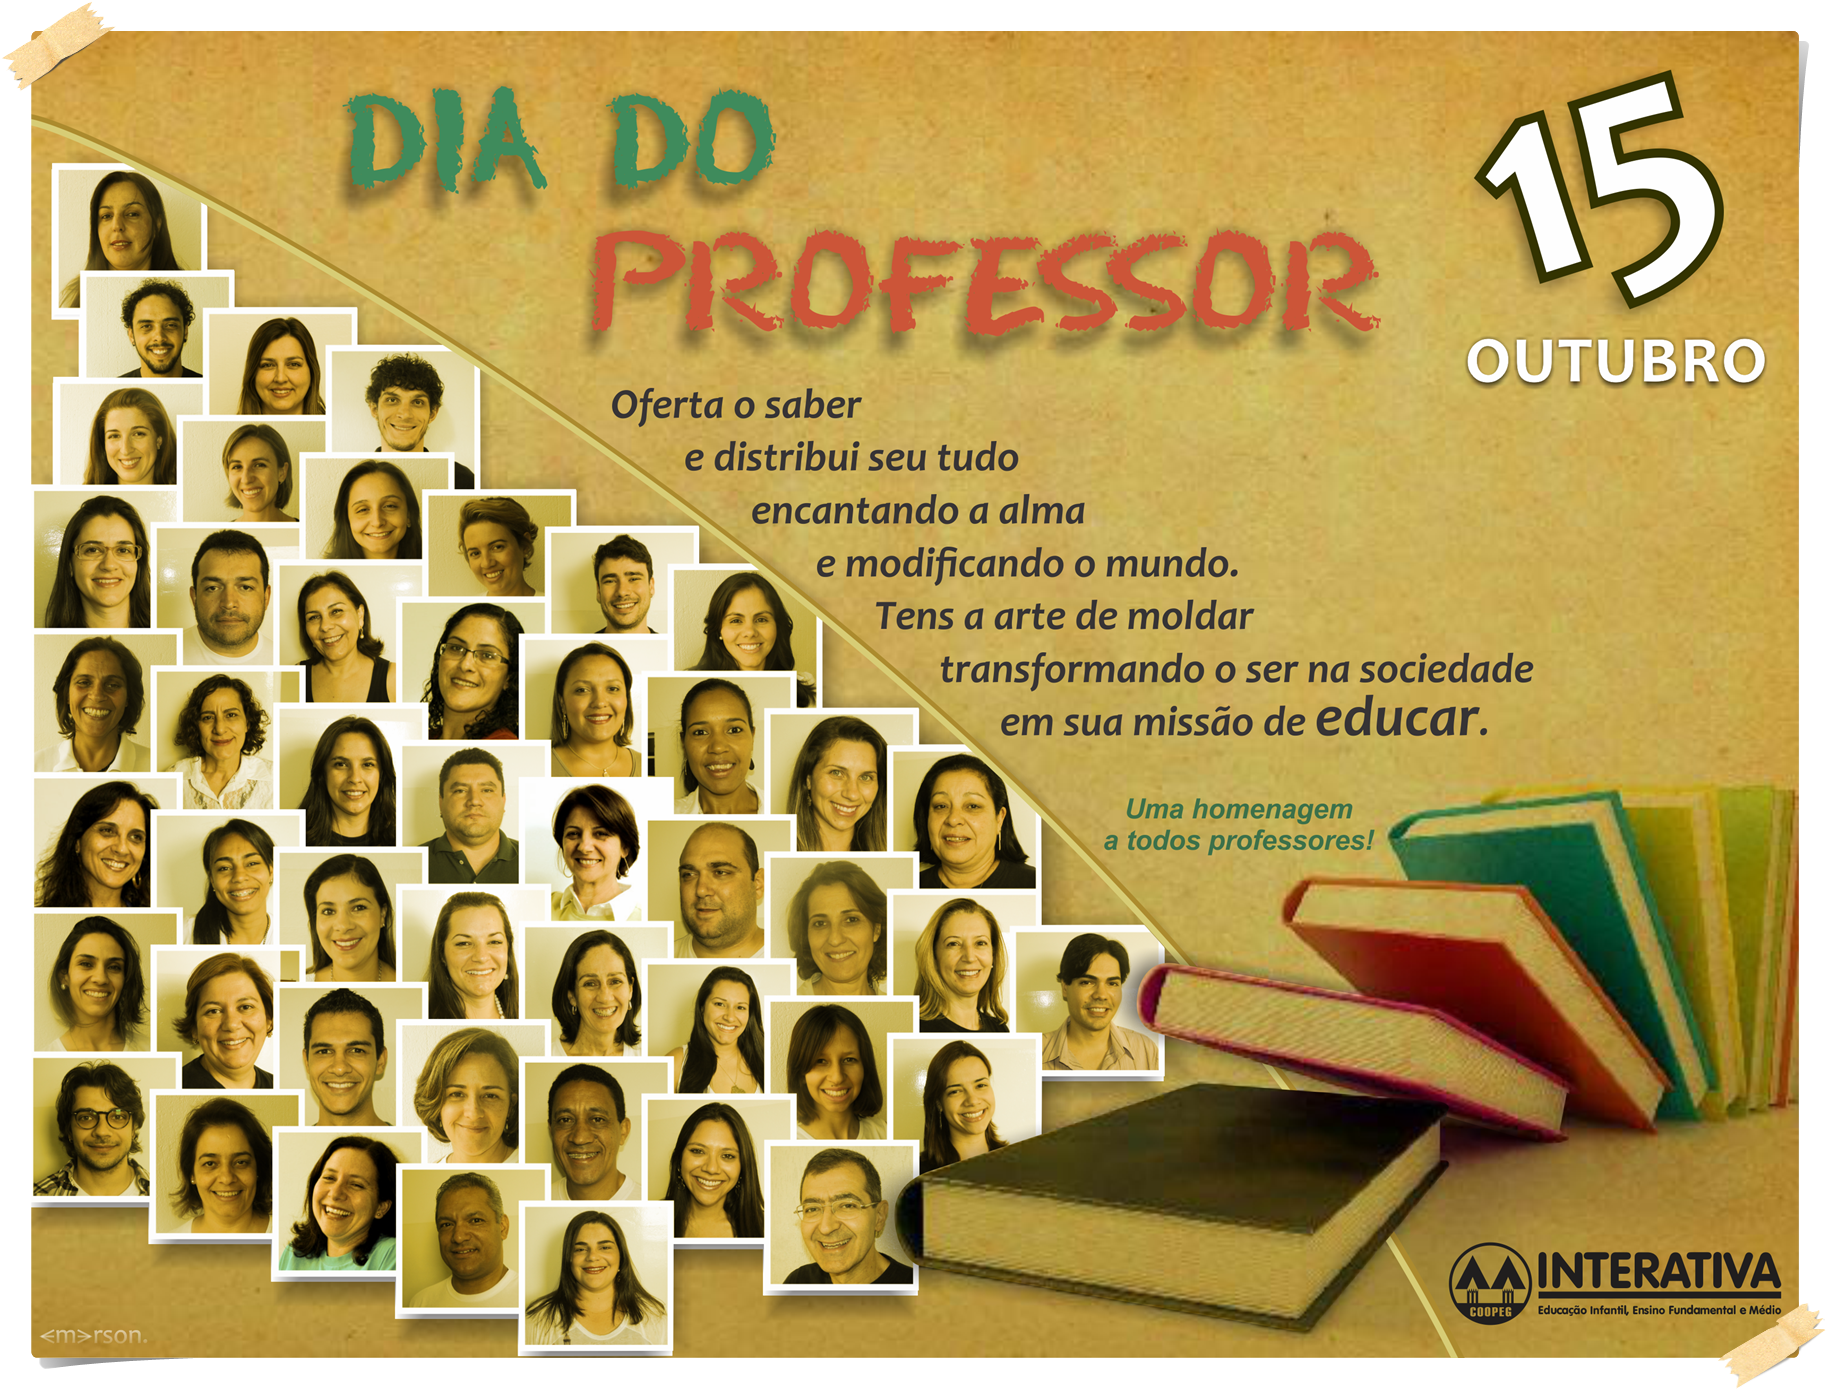 Dia do professor final11